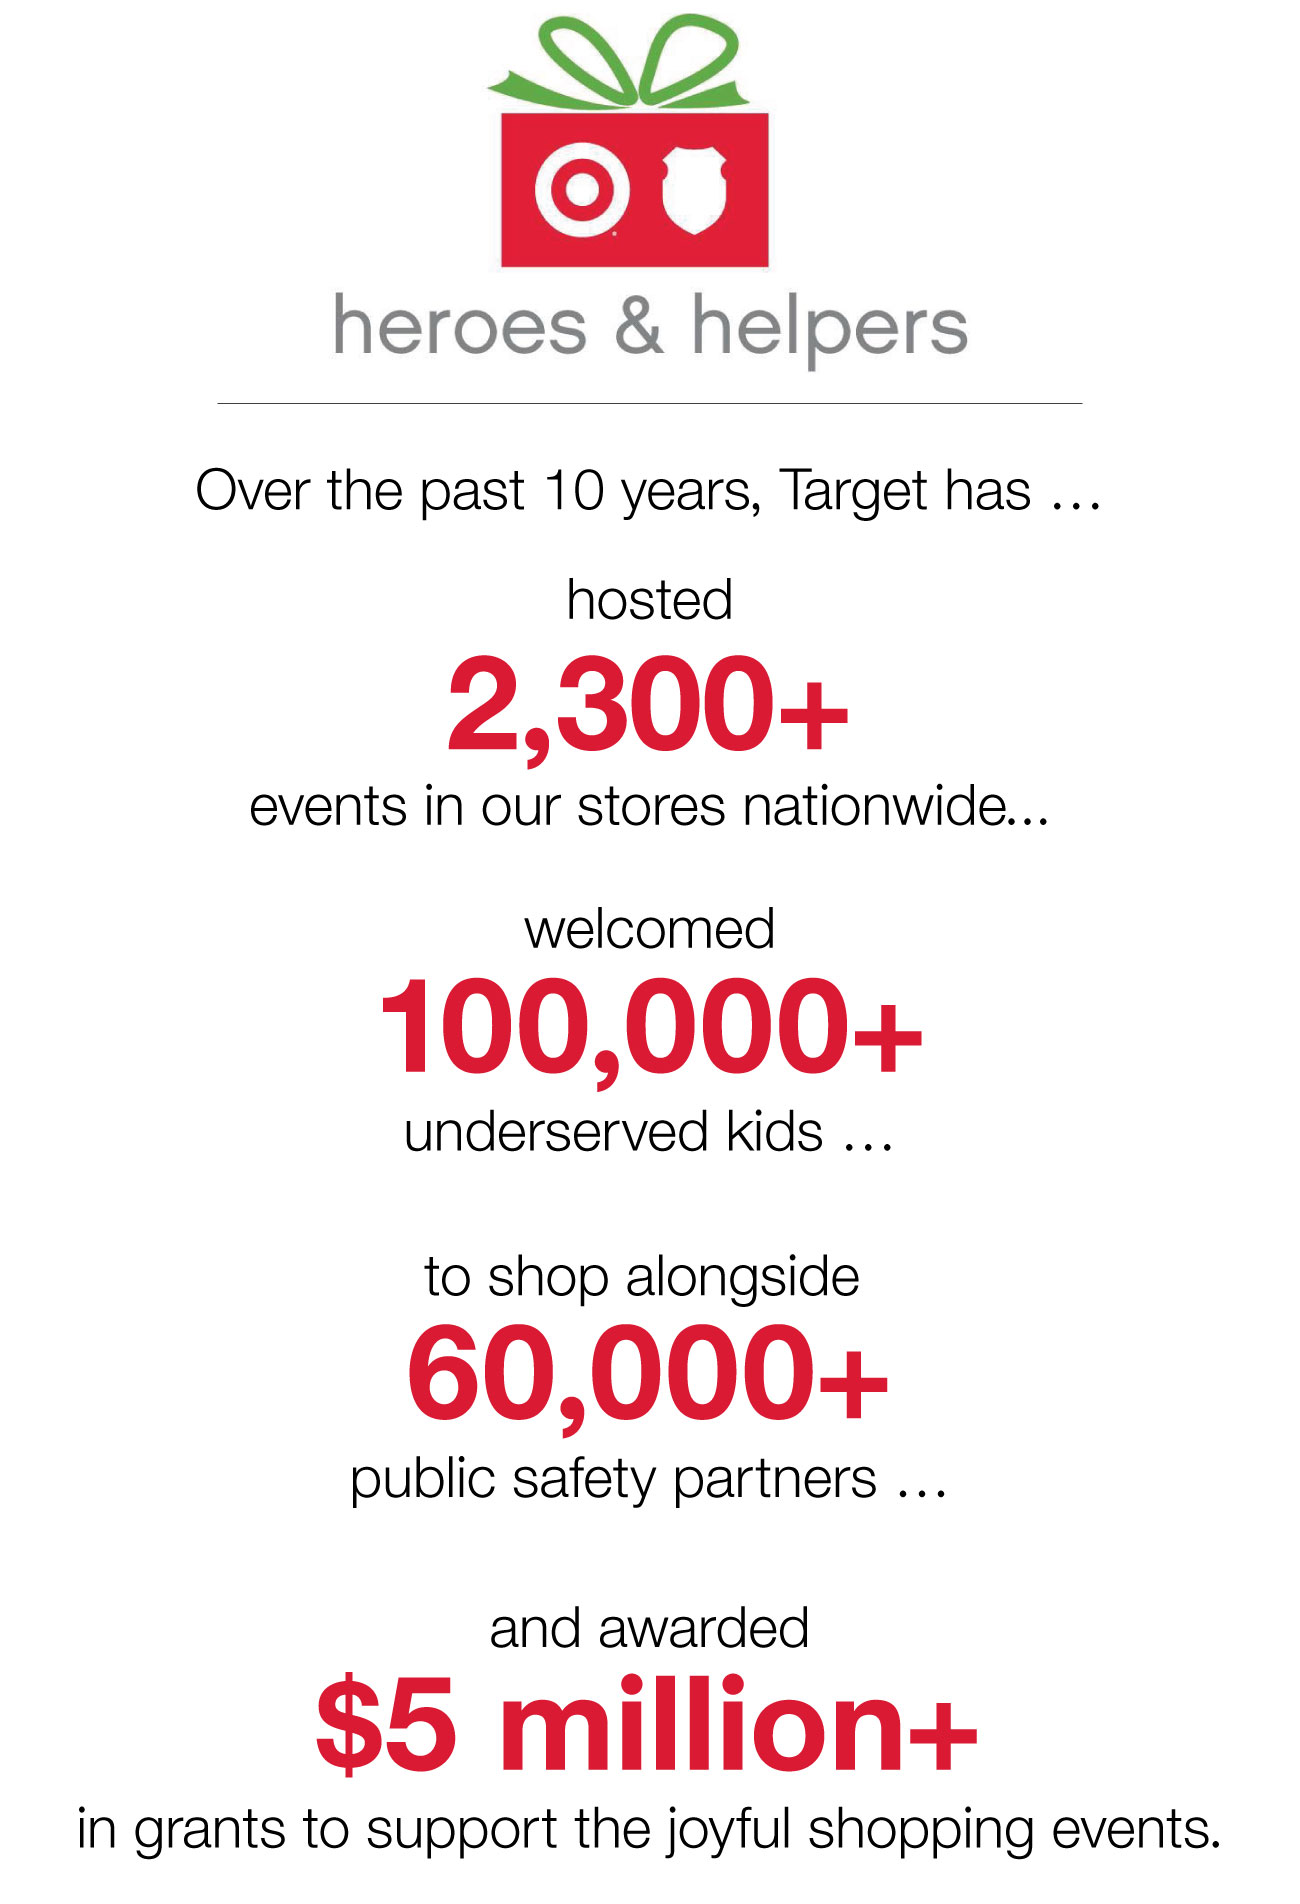 An infographic featuring the red and green Heroes & Helpers logo and gray and red text on a white background